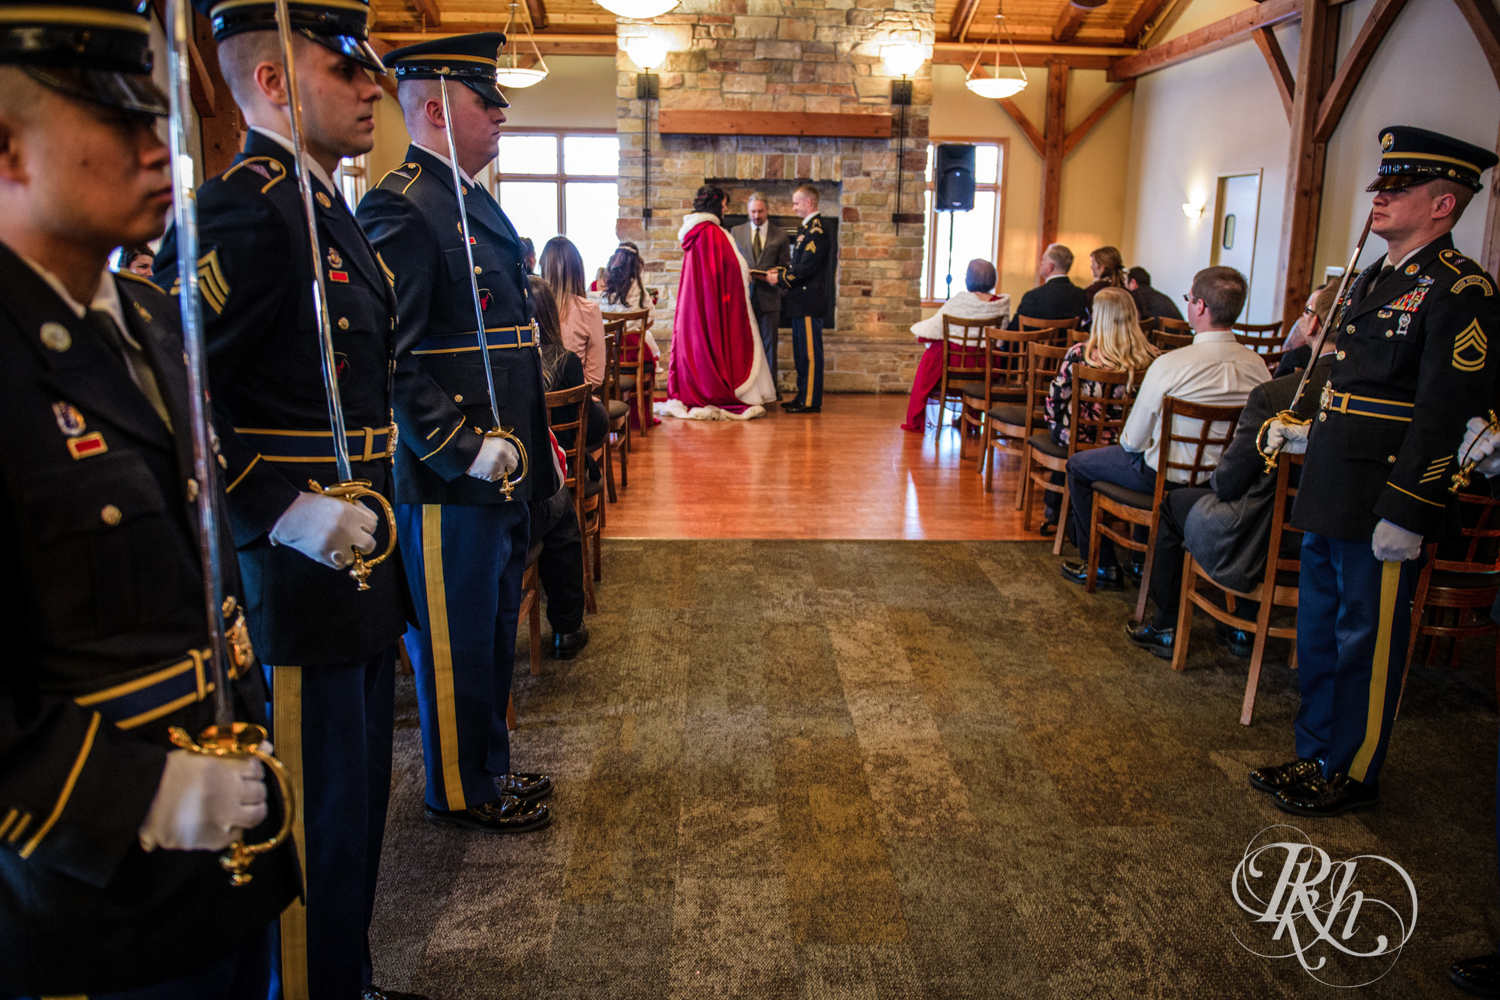 Minnesota Wedding Photography - RKH Images - Best of 2018 (3 of 51).jpg